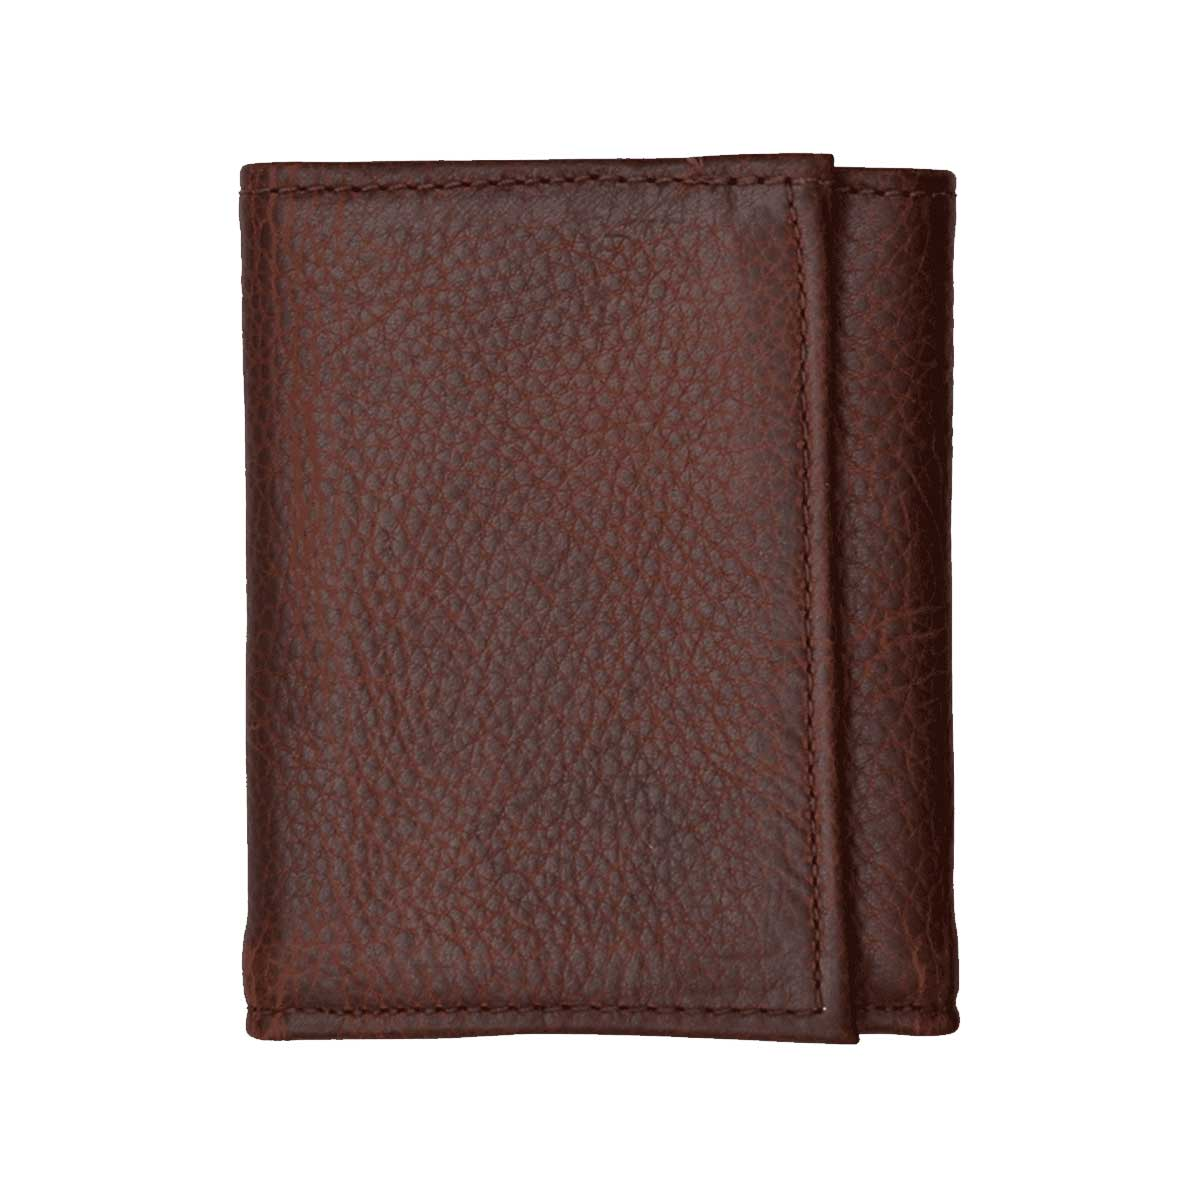 M&F Western Pebbled Leather Trifold Wallet - DW1030